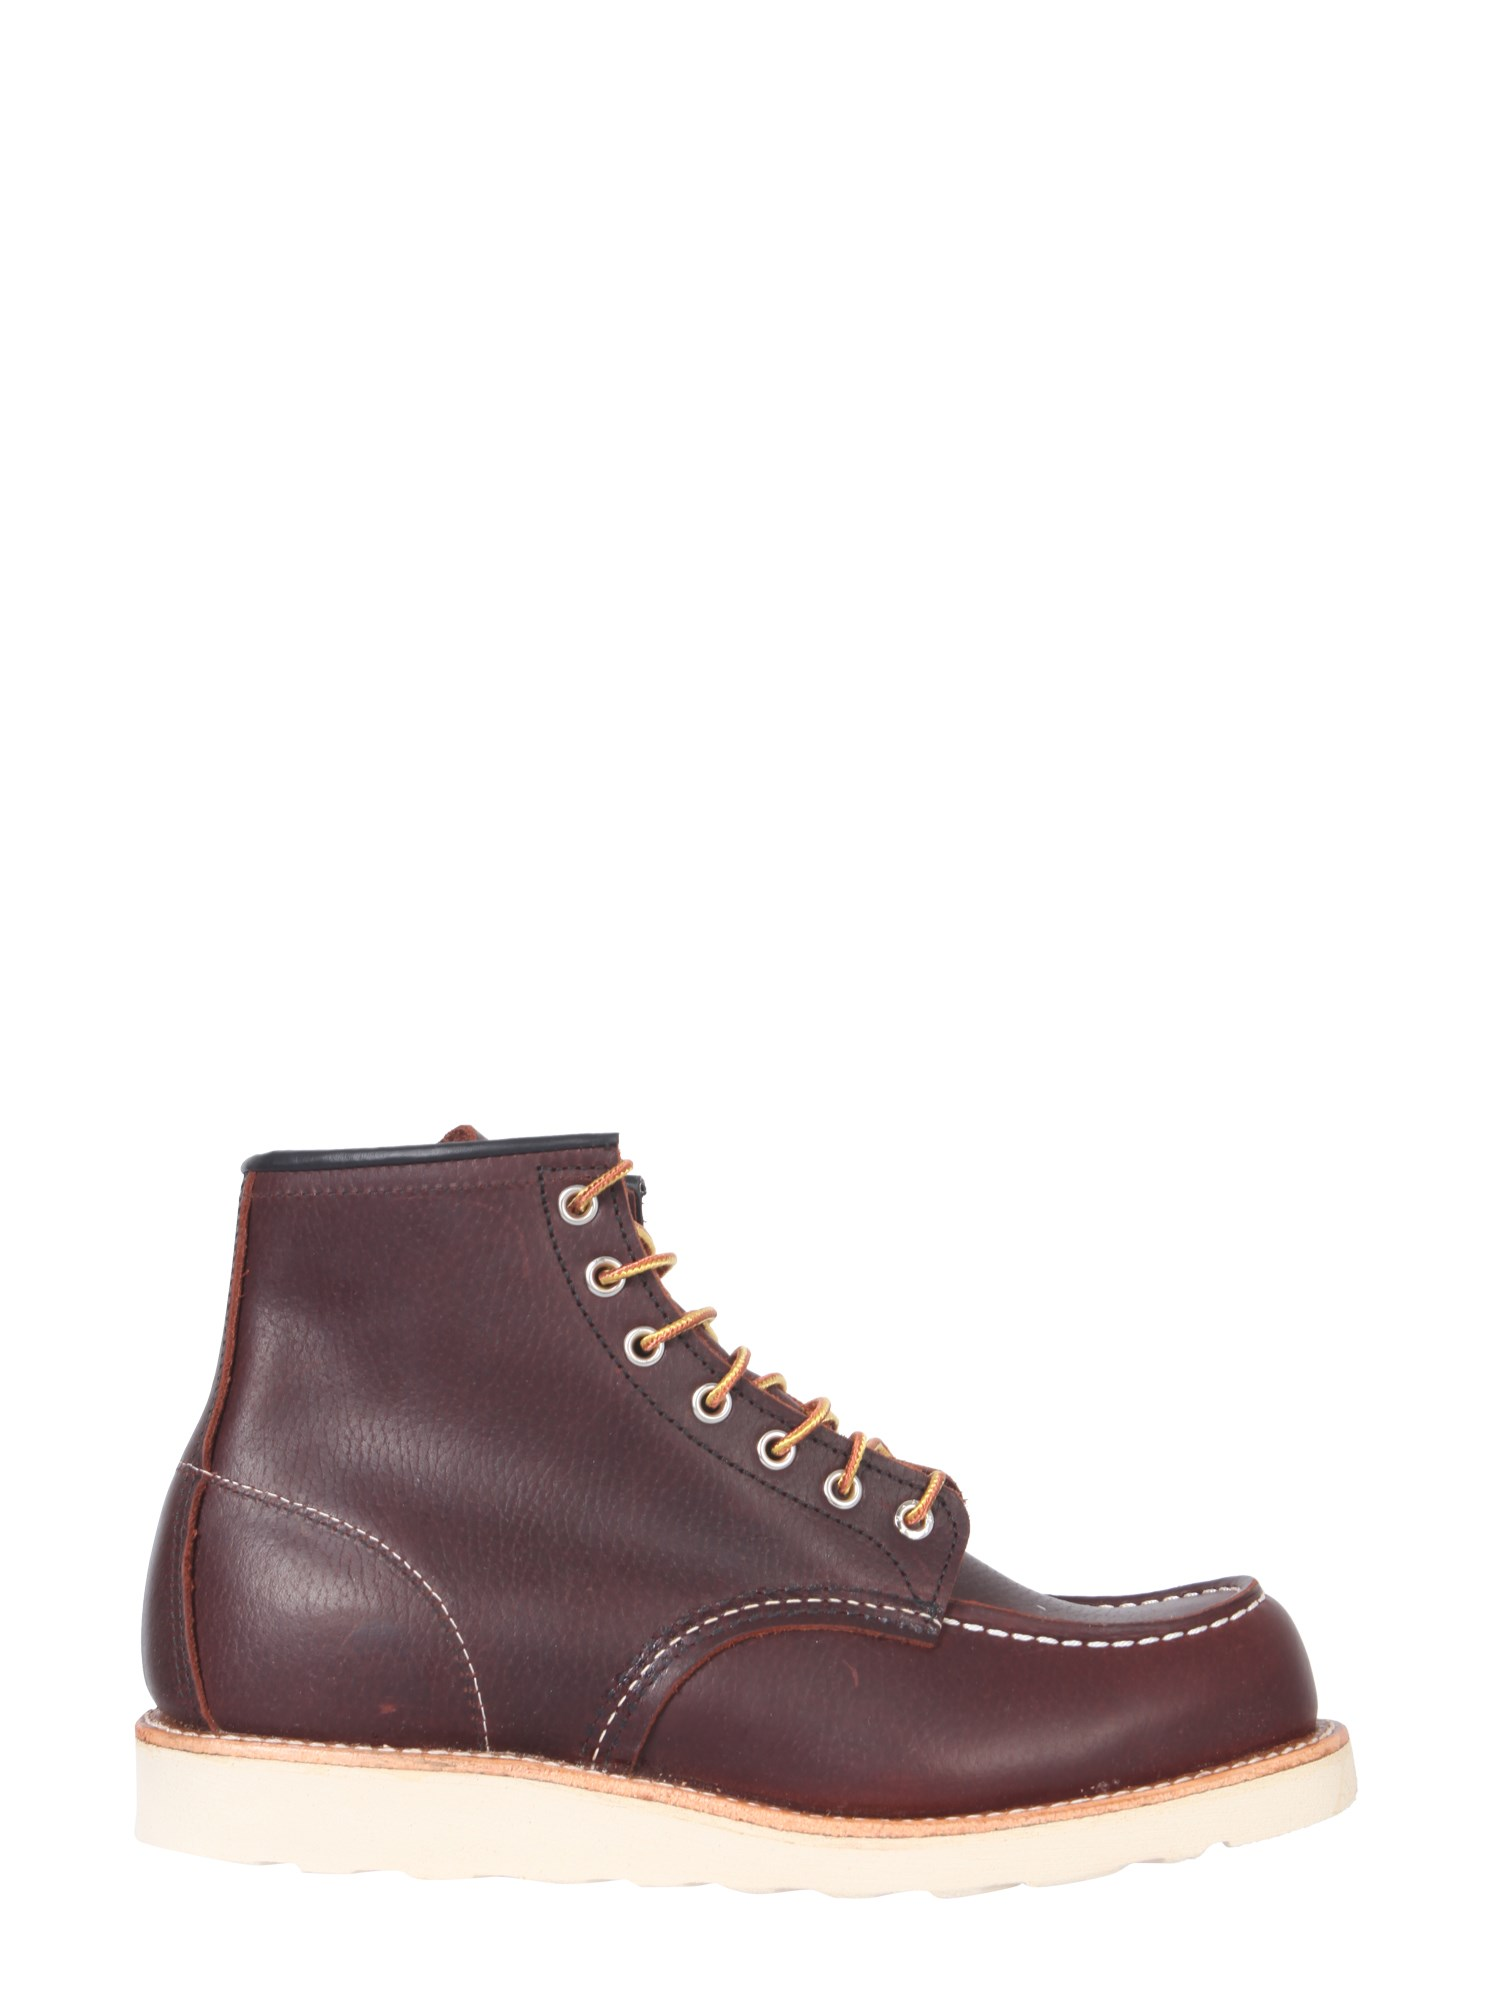 Red wing moc toe lace-up boots - red wing - Modalova